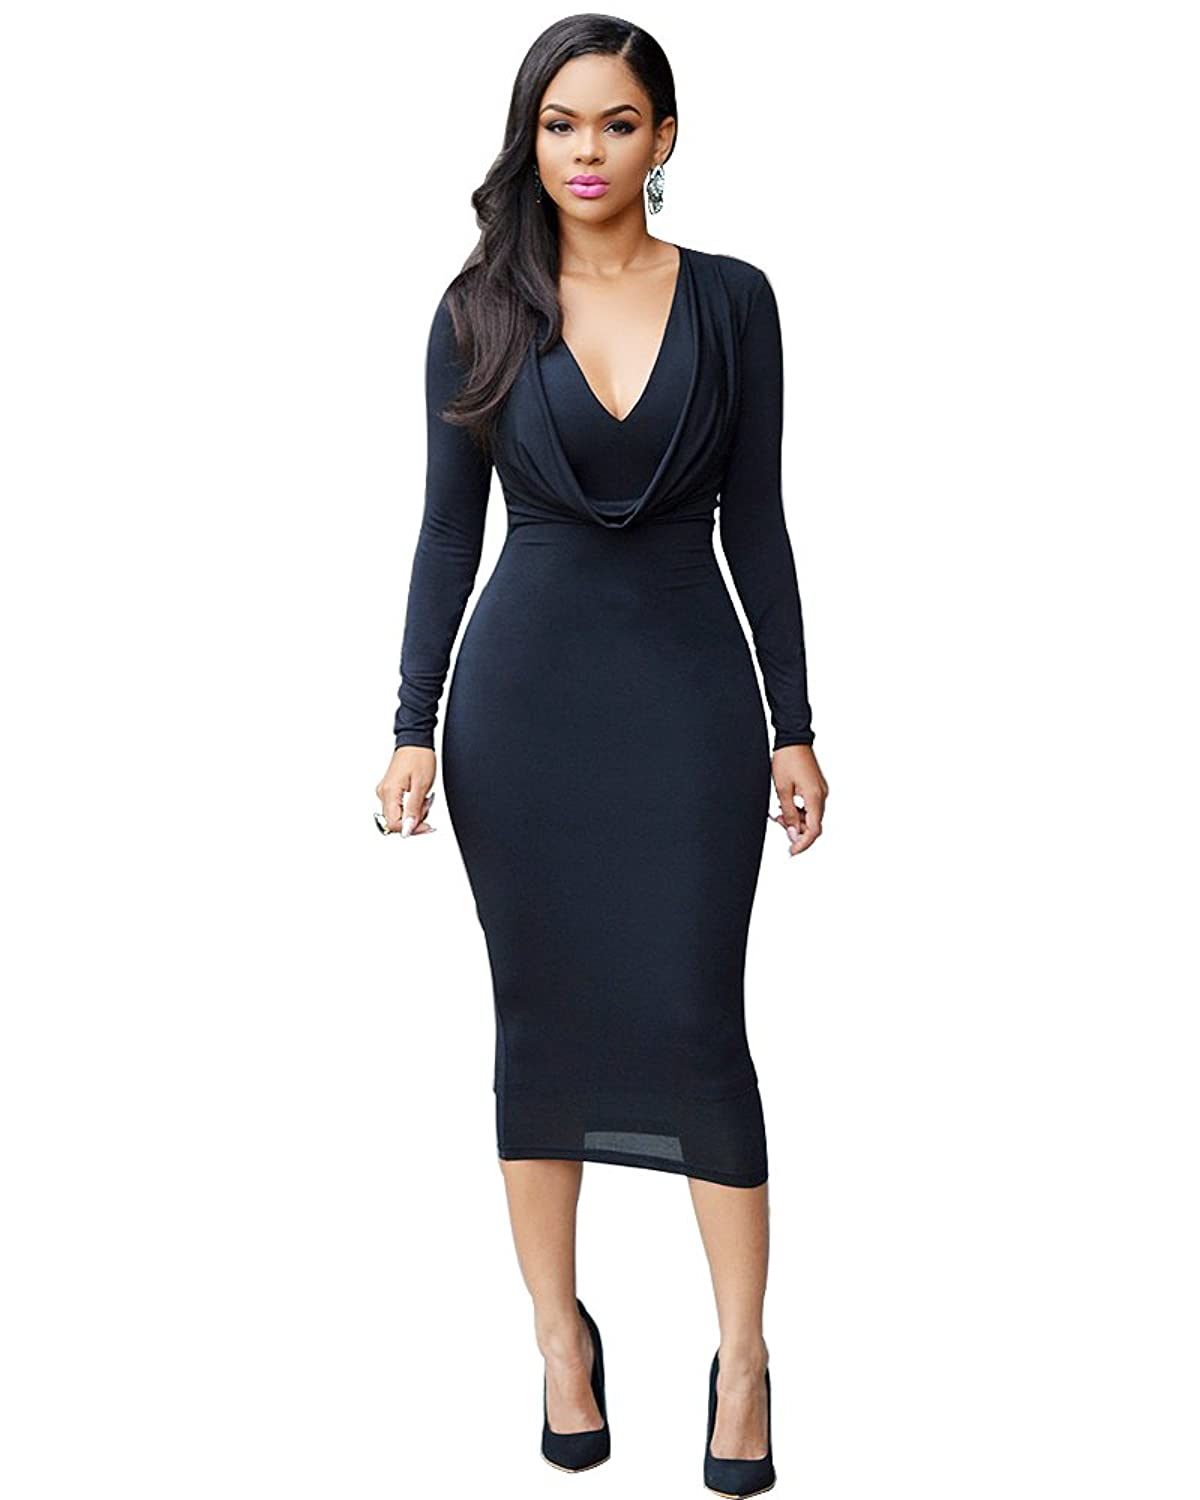 HAPEE Women's Long Sleeve Zip Stretch Bodycon Party Club Sexy Dresses